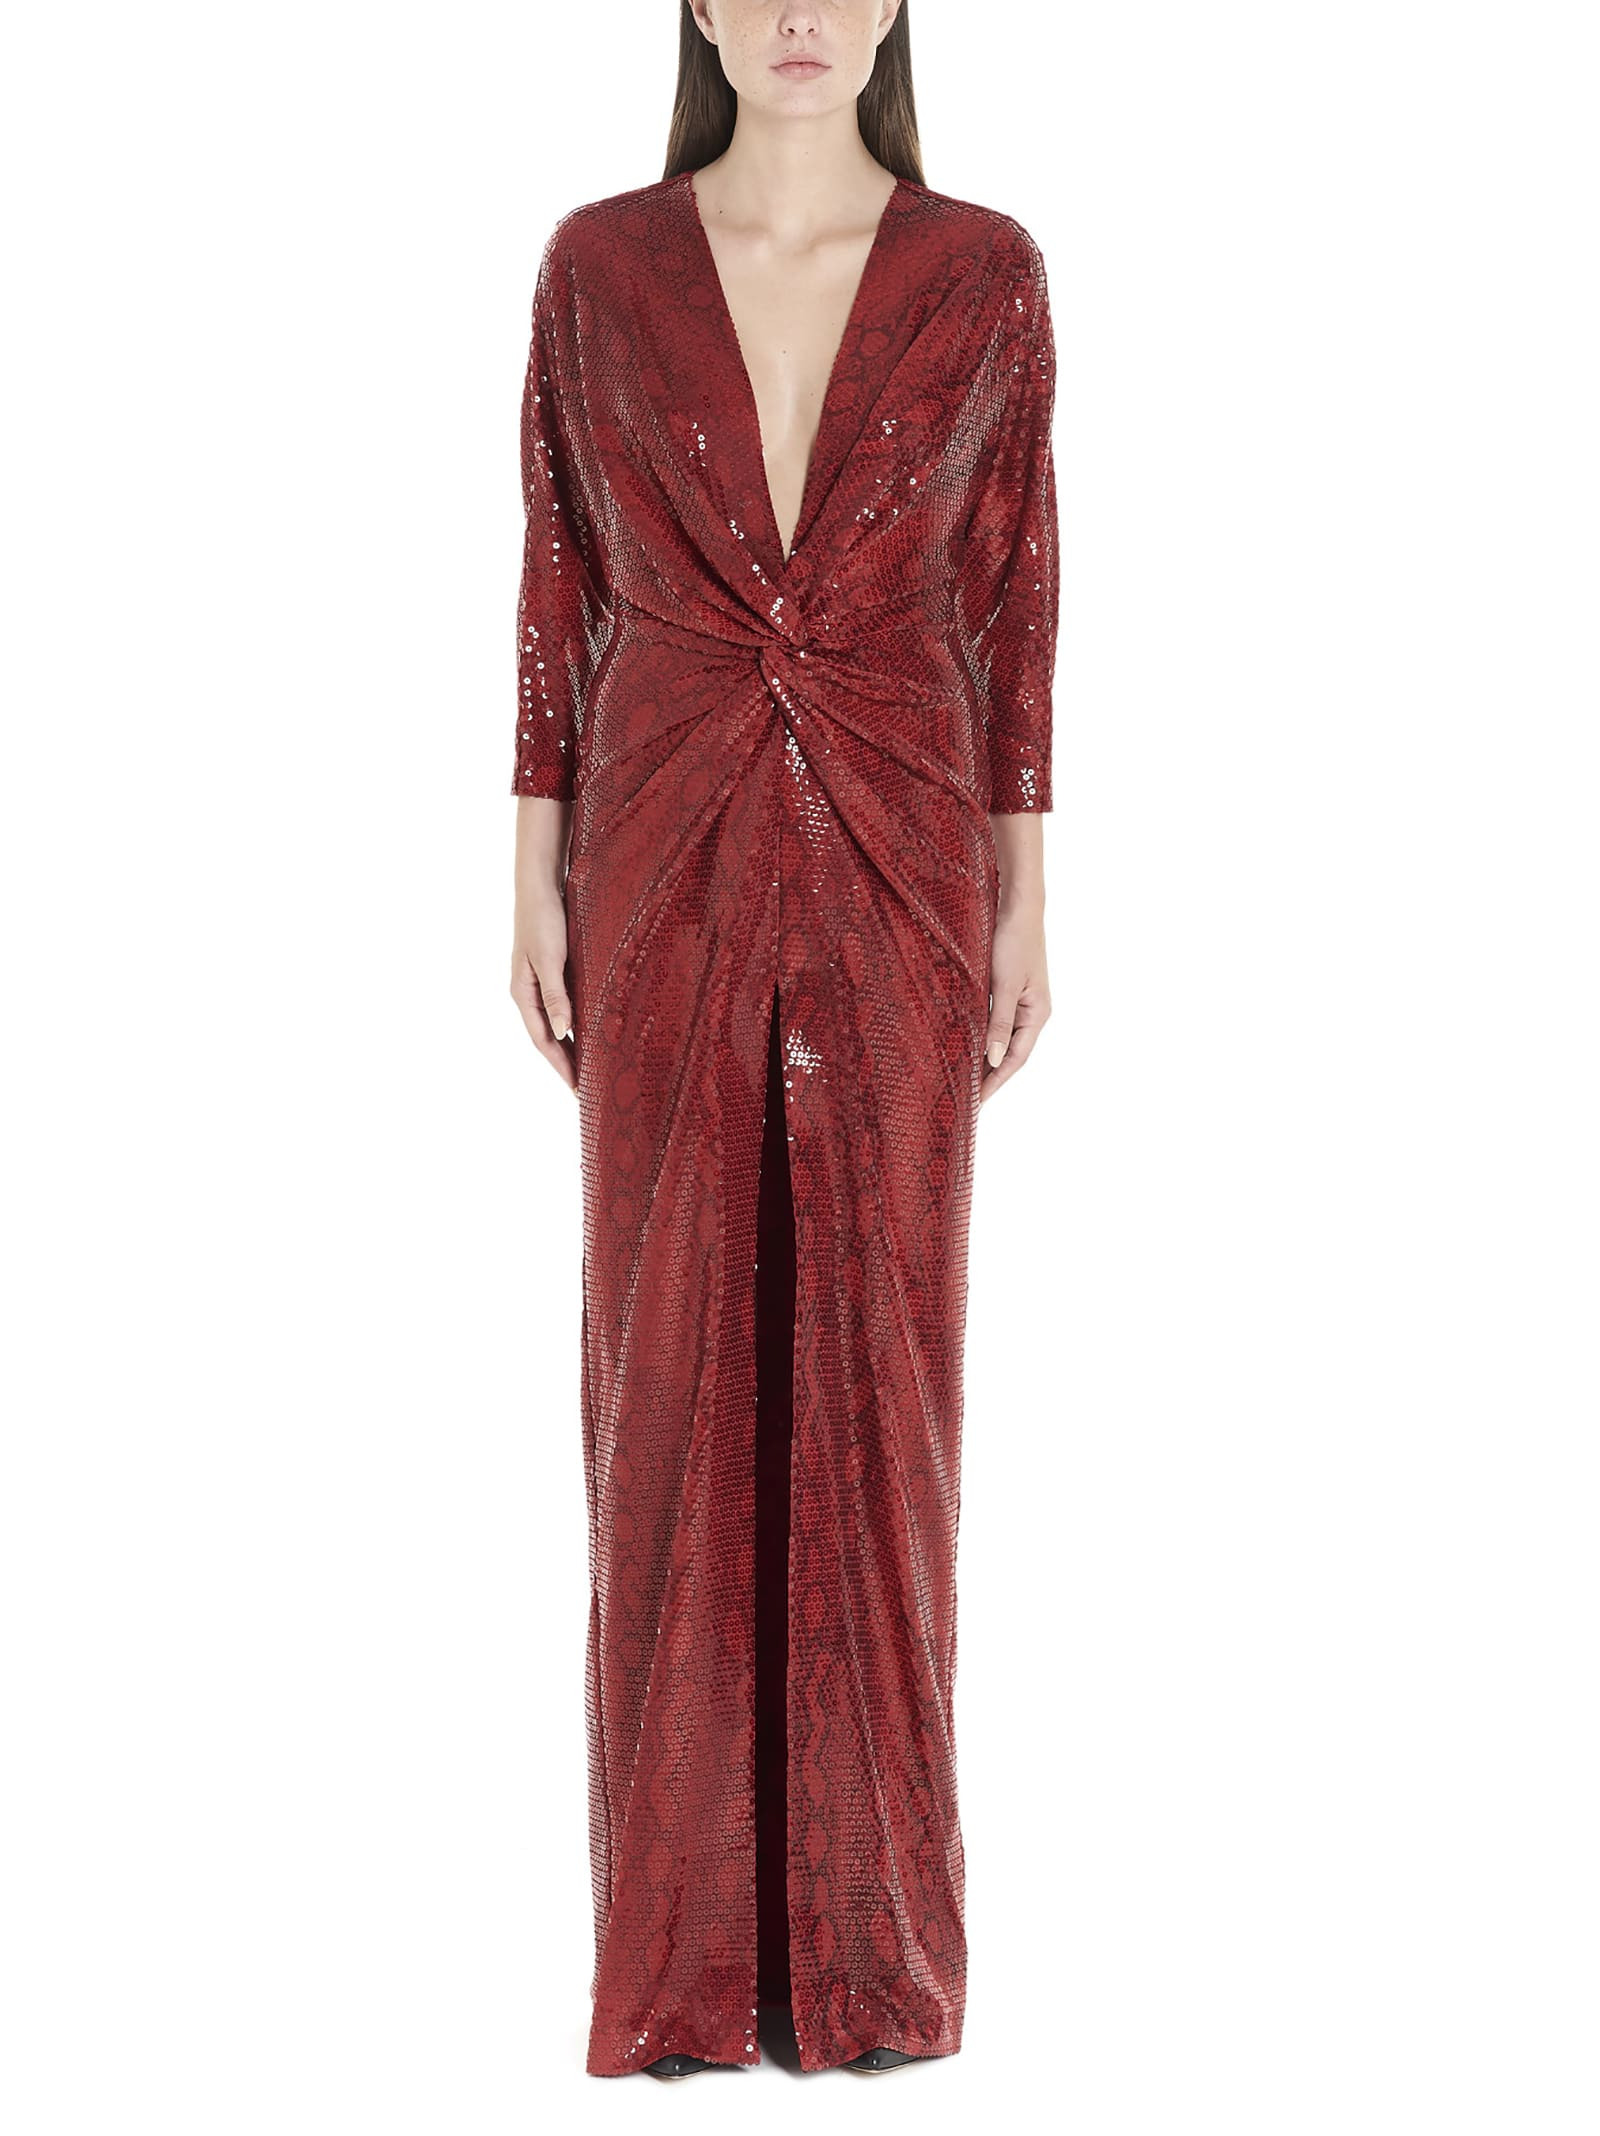 In The Mood For Love oscar Dress Dress